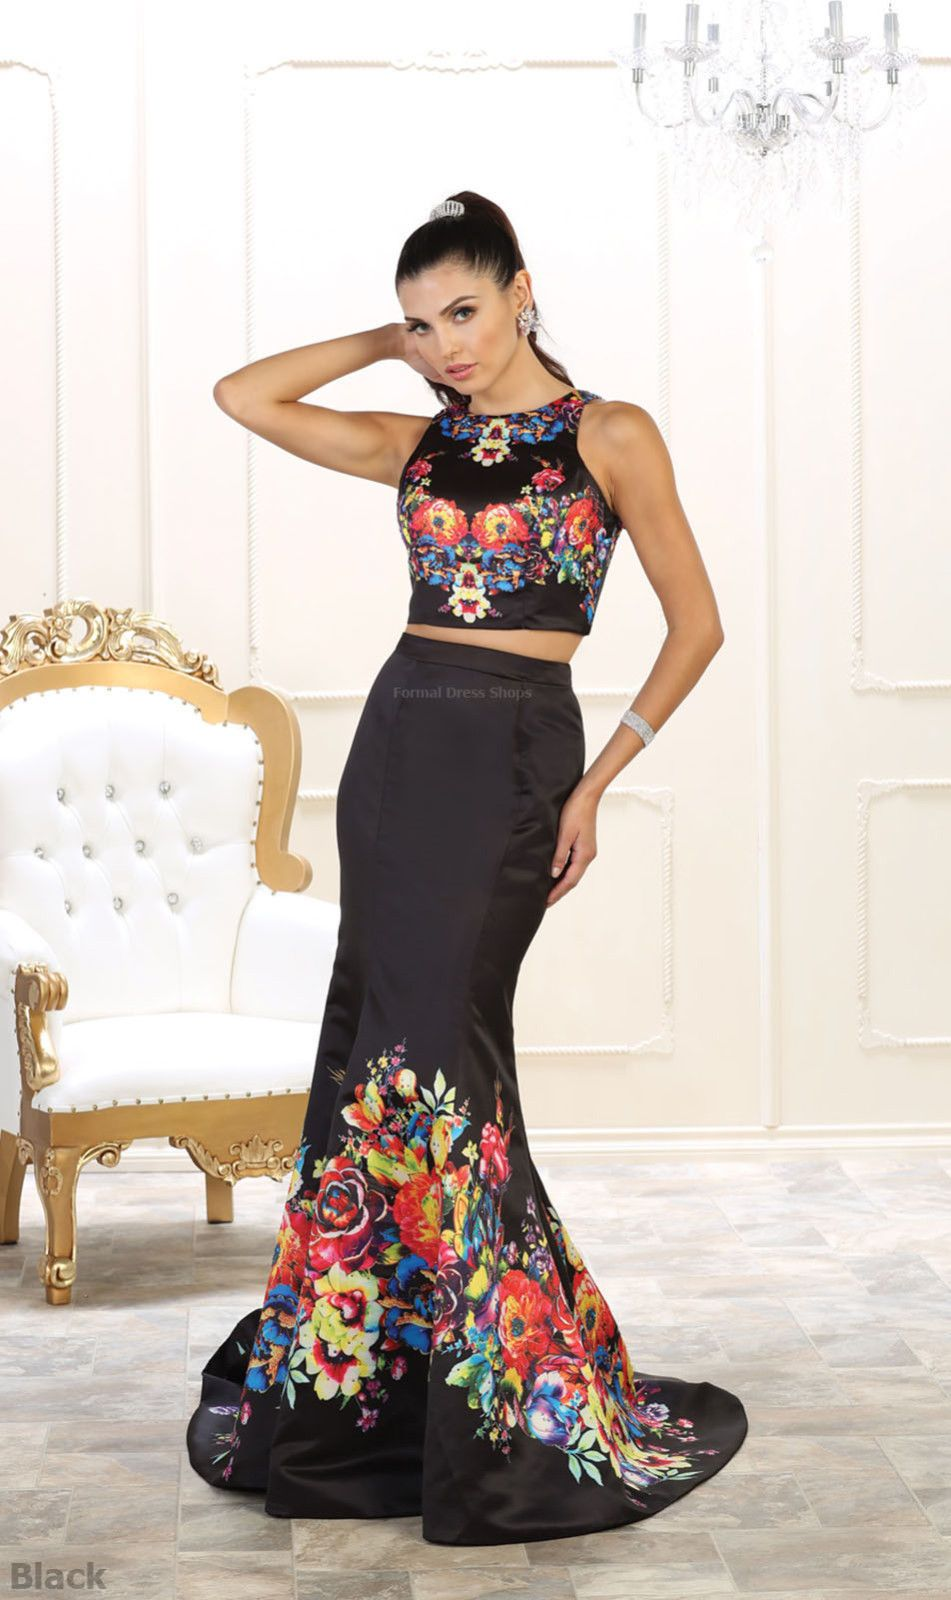 db24e6f845c9 SPECIAL OCCASION EVENING GOWN SIMPLE EMPIRE WAIST SEMI FORMAL LONG PROM  DRESS - Semi Formal Dresses